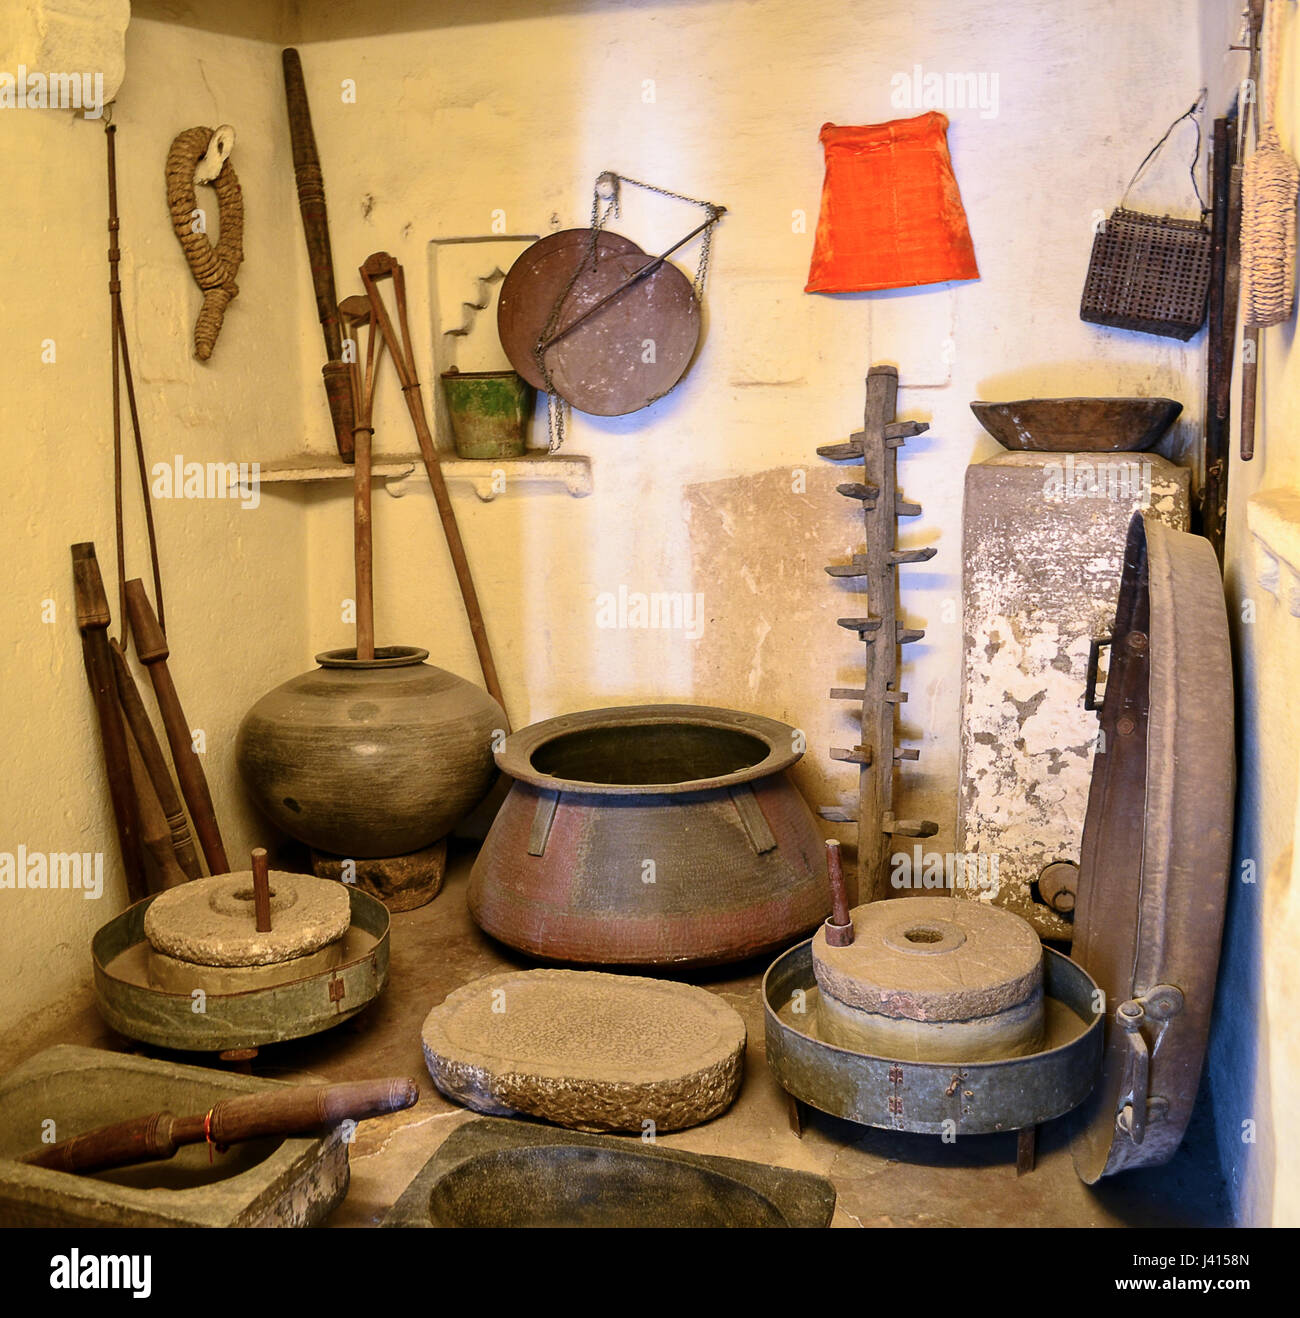 Kitchen King Ahmedabad Ancient Kitchen Utensils Udaipur Rajasthan Gujarat